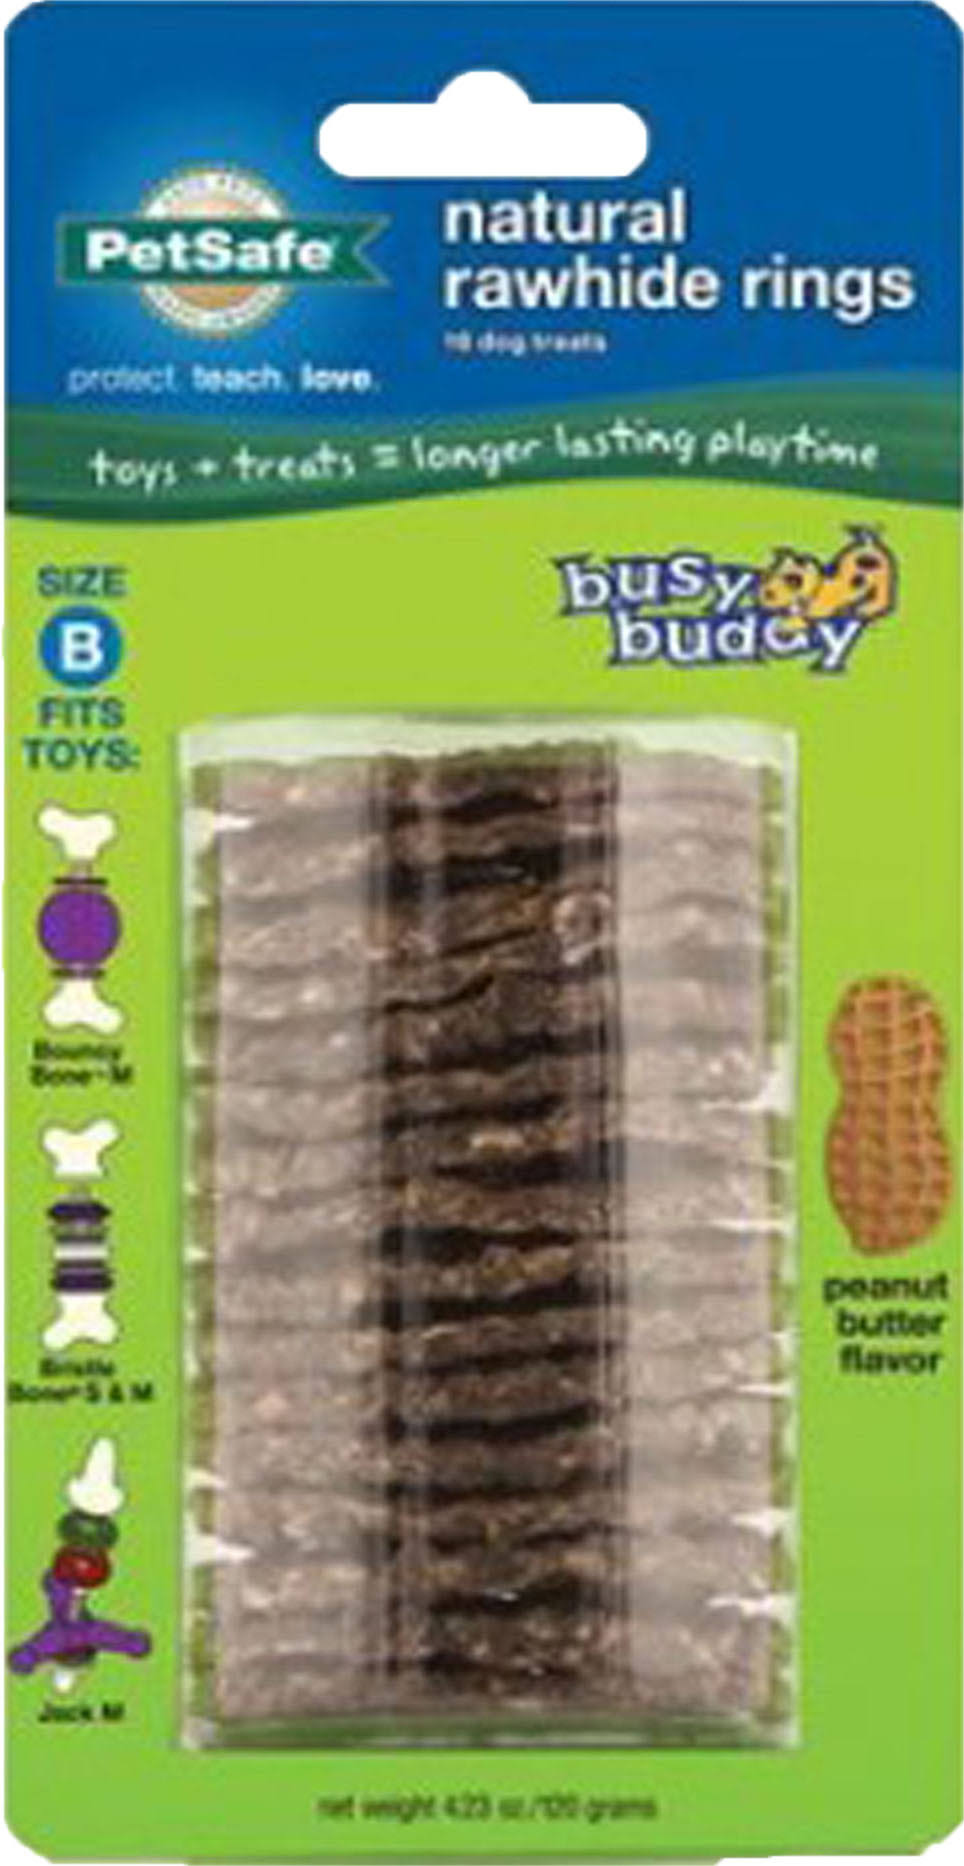 PetSafe Busy Buddy Refill Ring Dog Treats - Peanut Butter Flavored